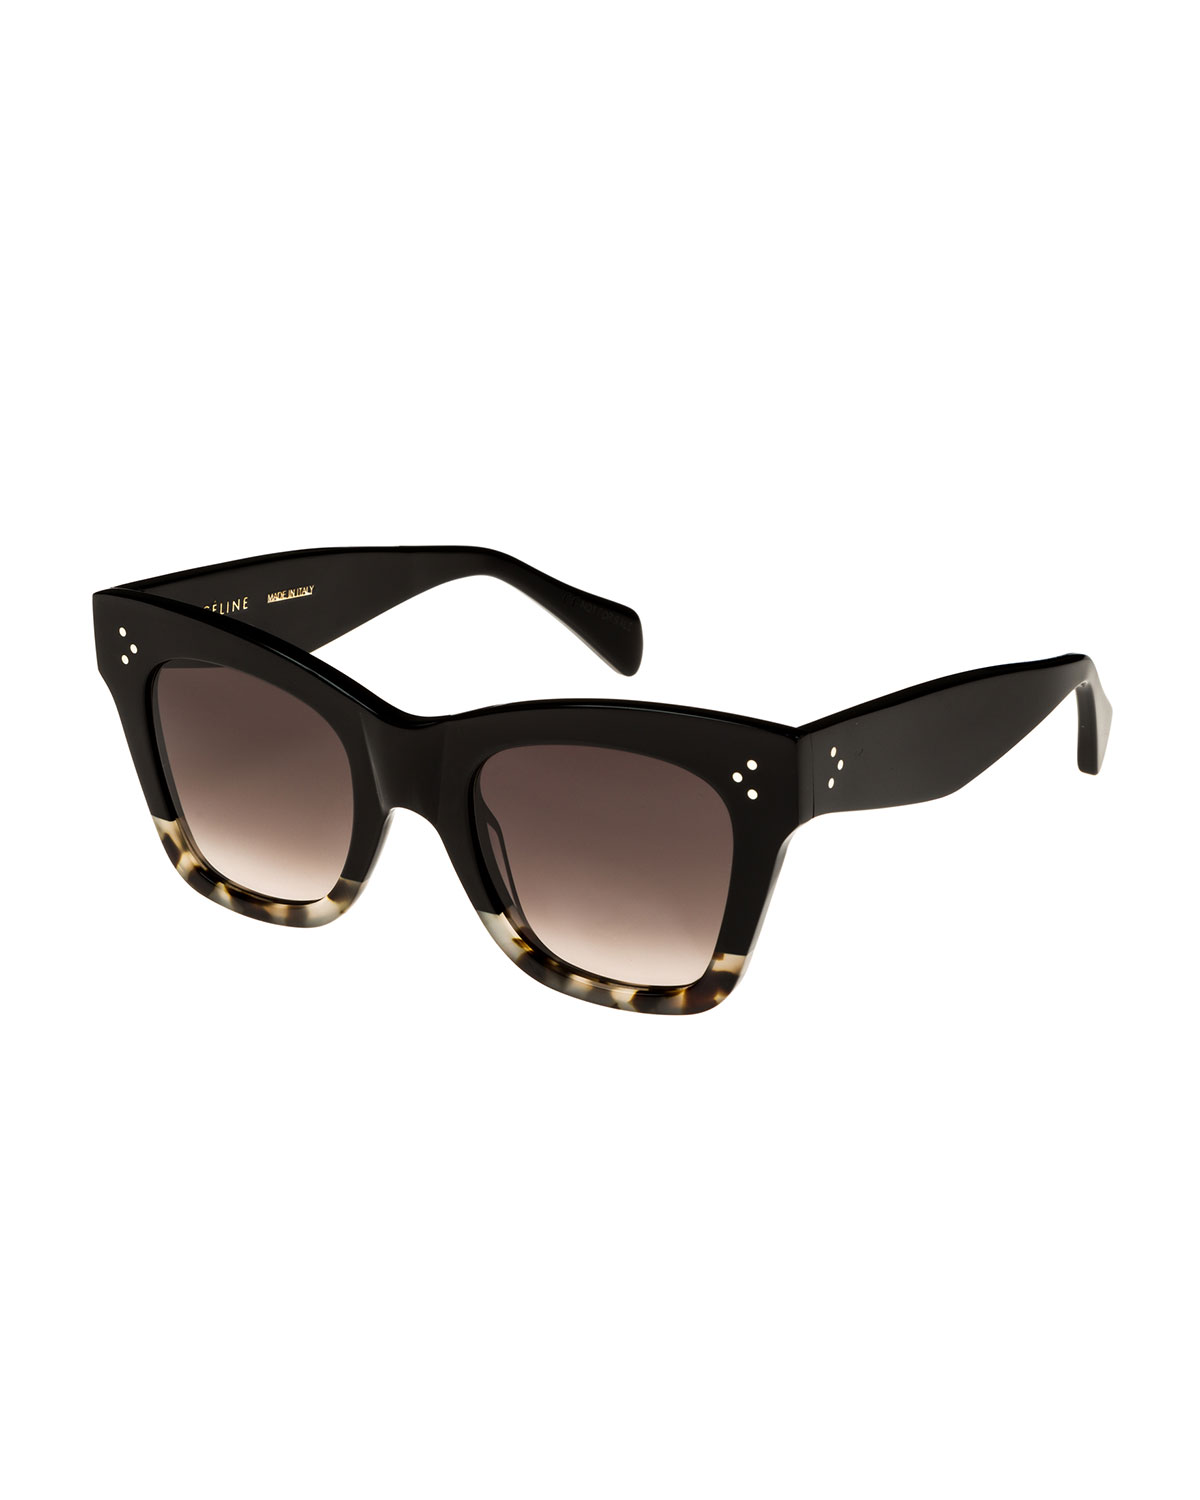 2b891f0023 Celine Two-Tone Gradient Cat-Eye Sunglasses